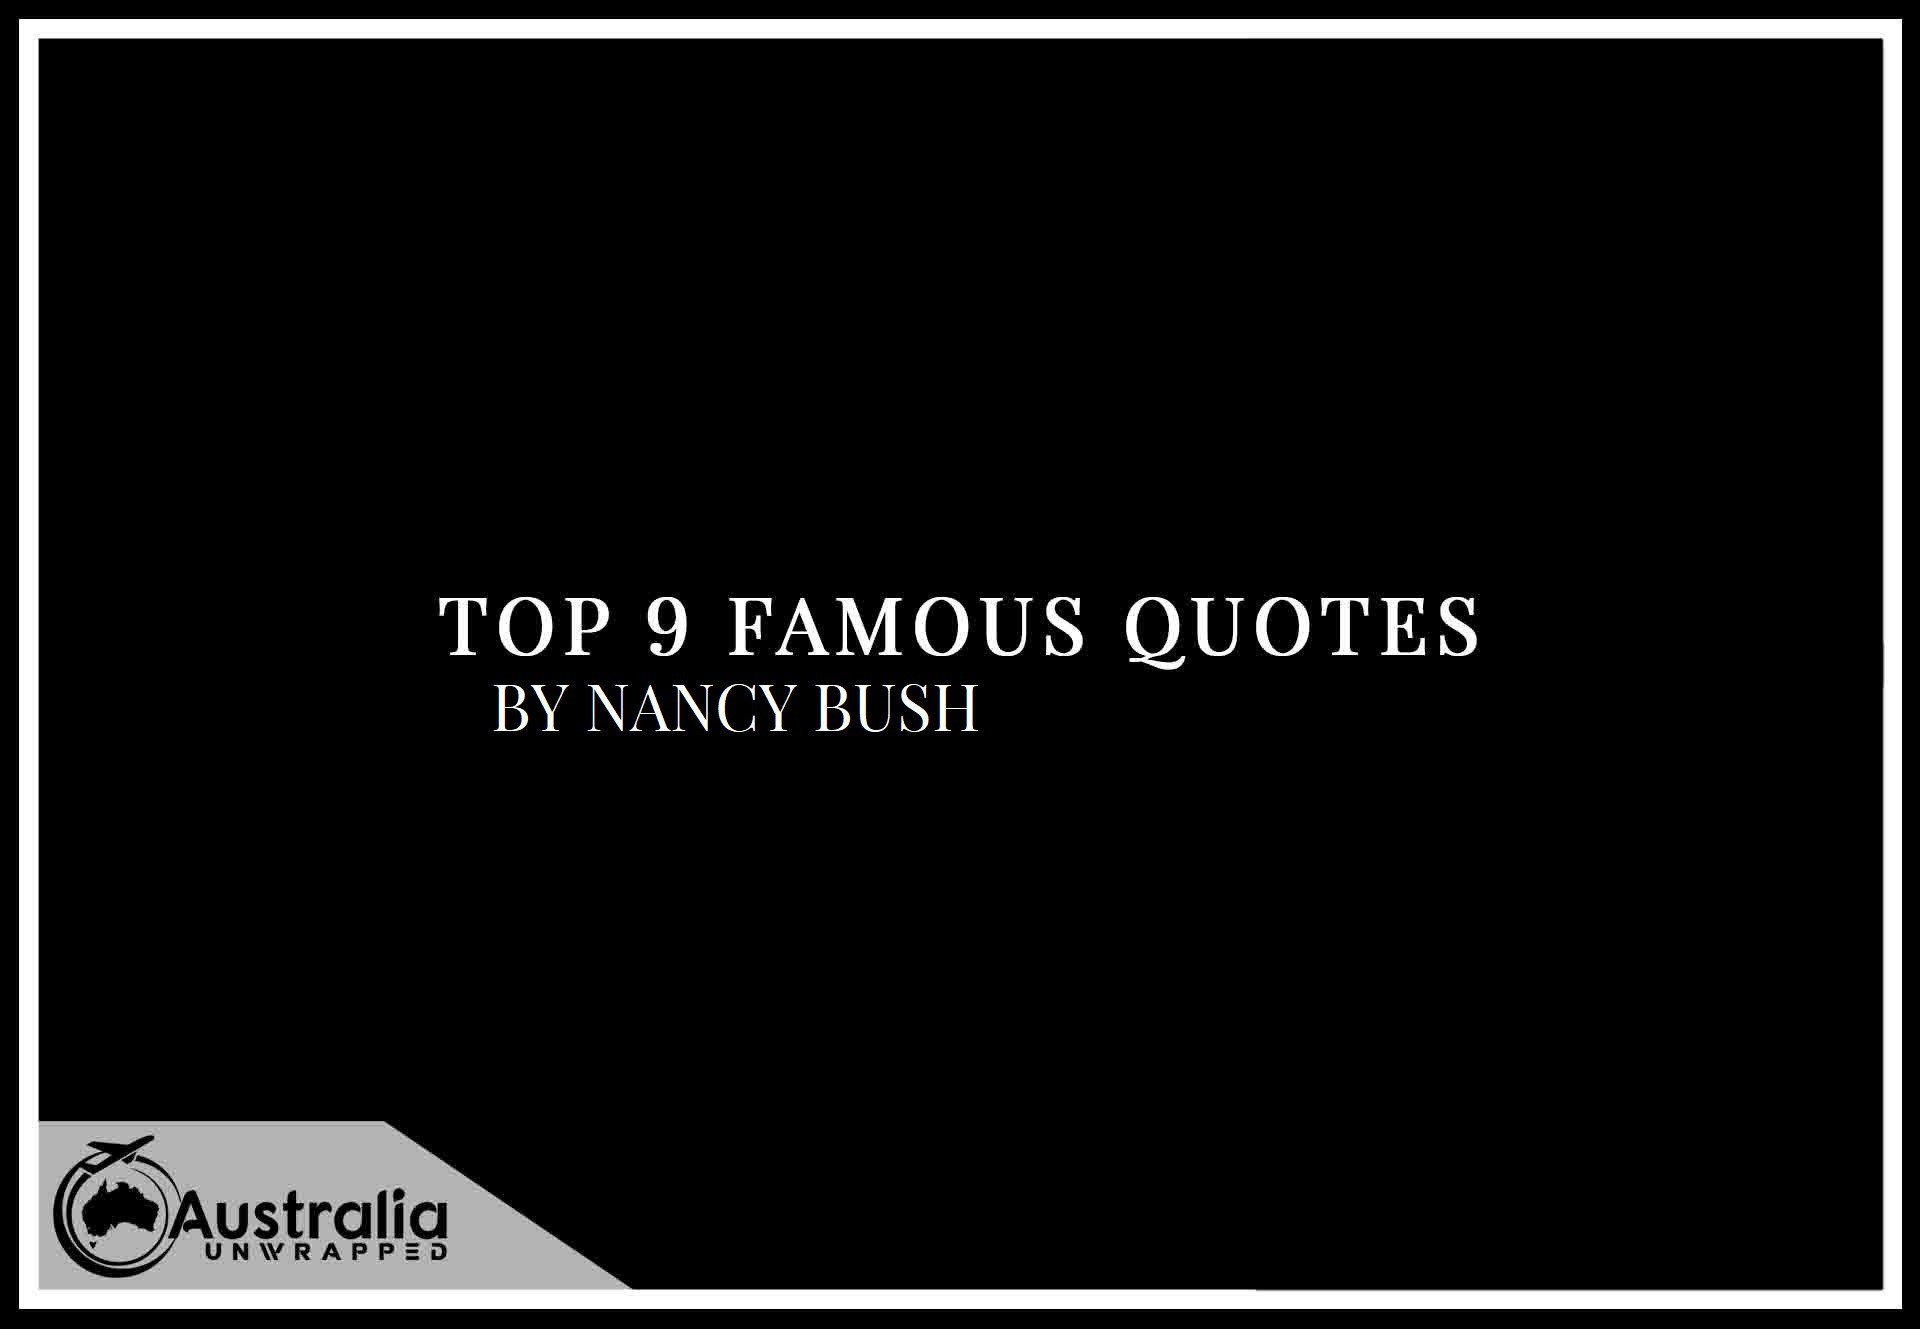 Top 9 Famous Quotes by Author Nancy Bush